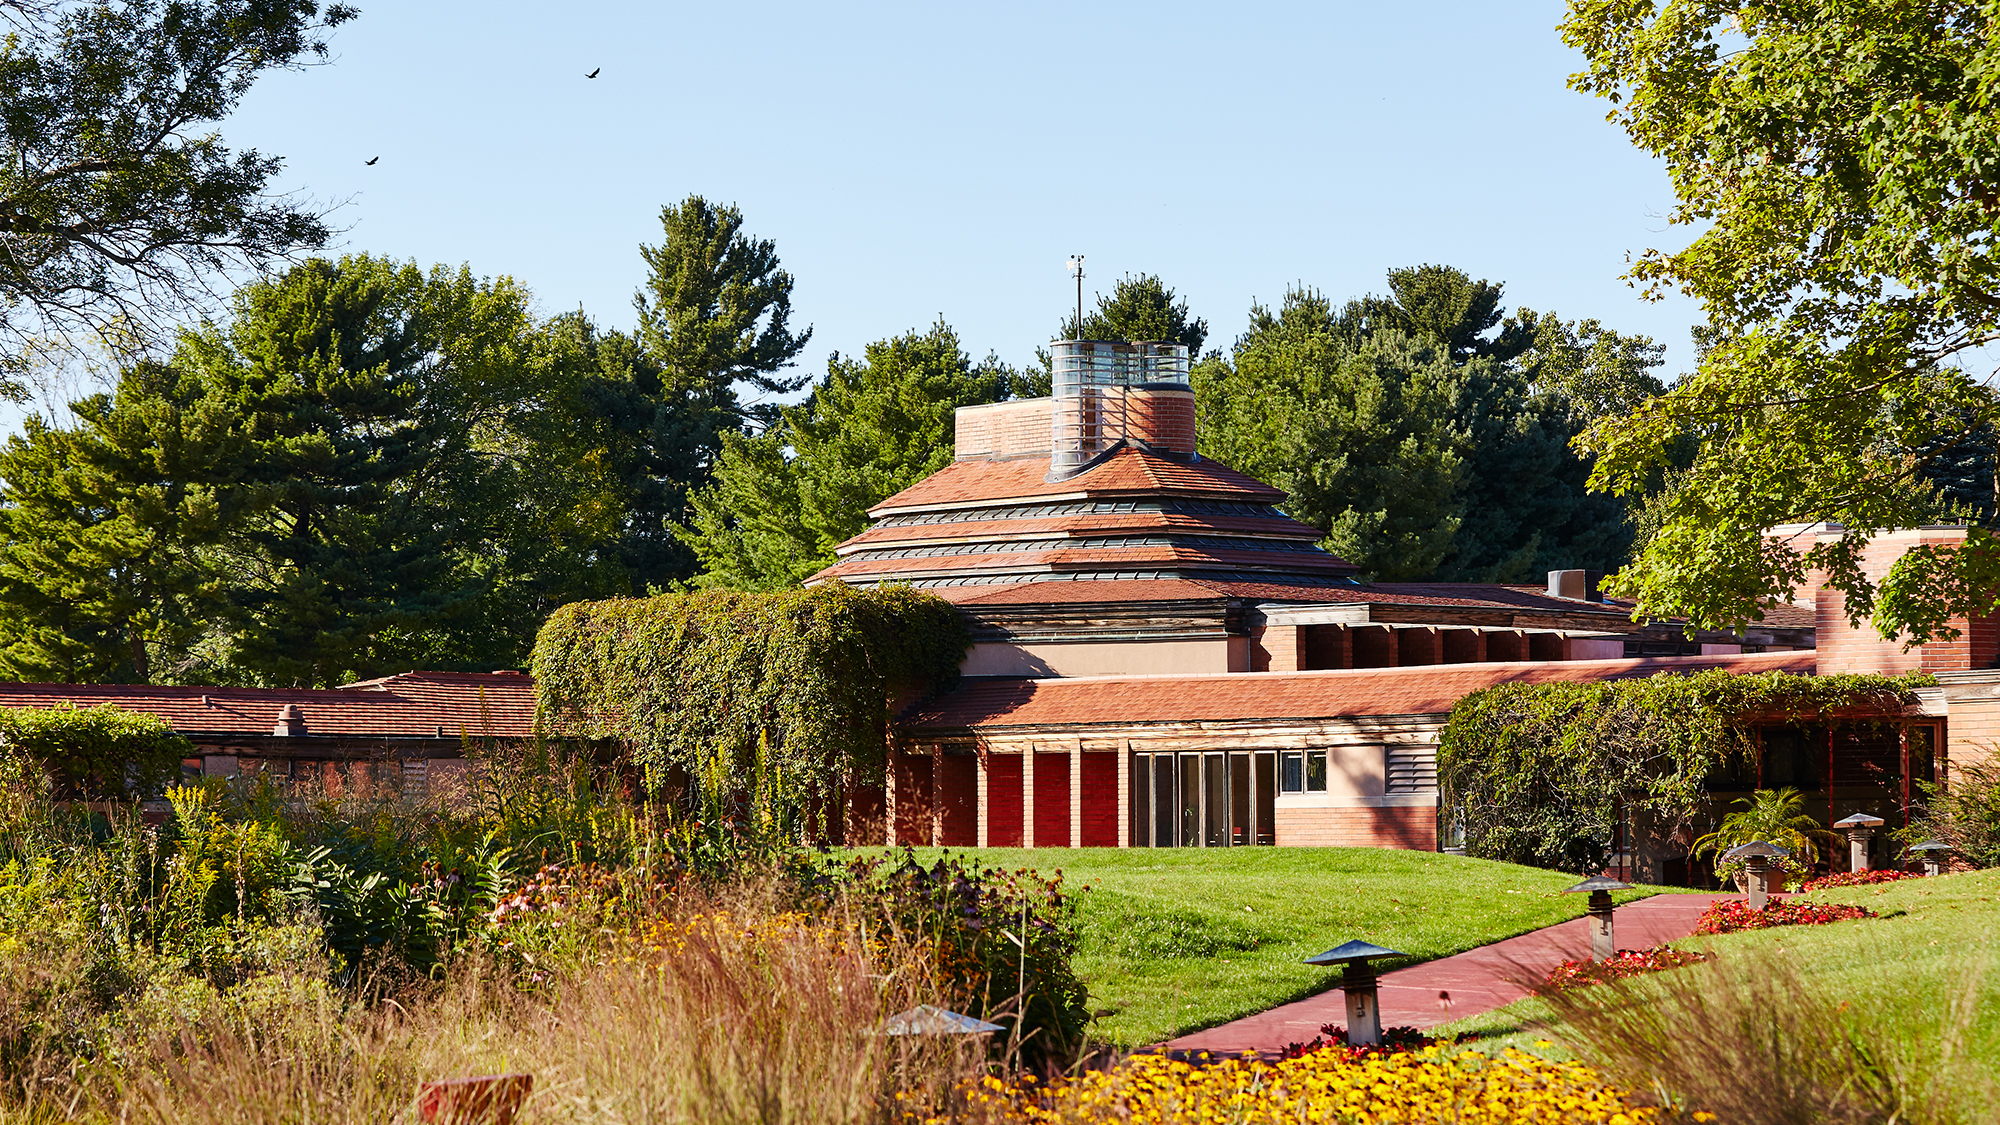 Wingspread, la casa di H.F Johnson Jr. progettata da Frank Lloyd Wright